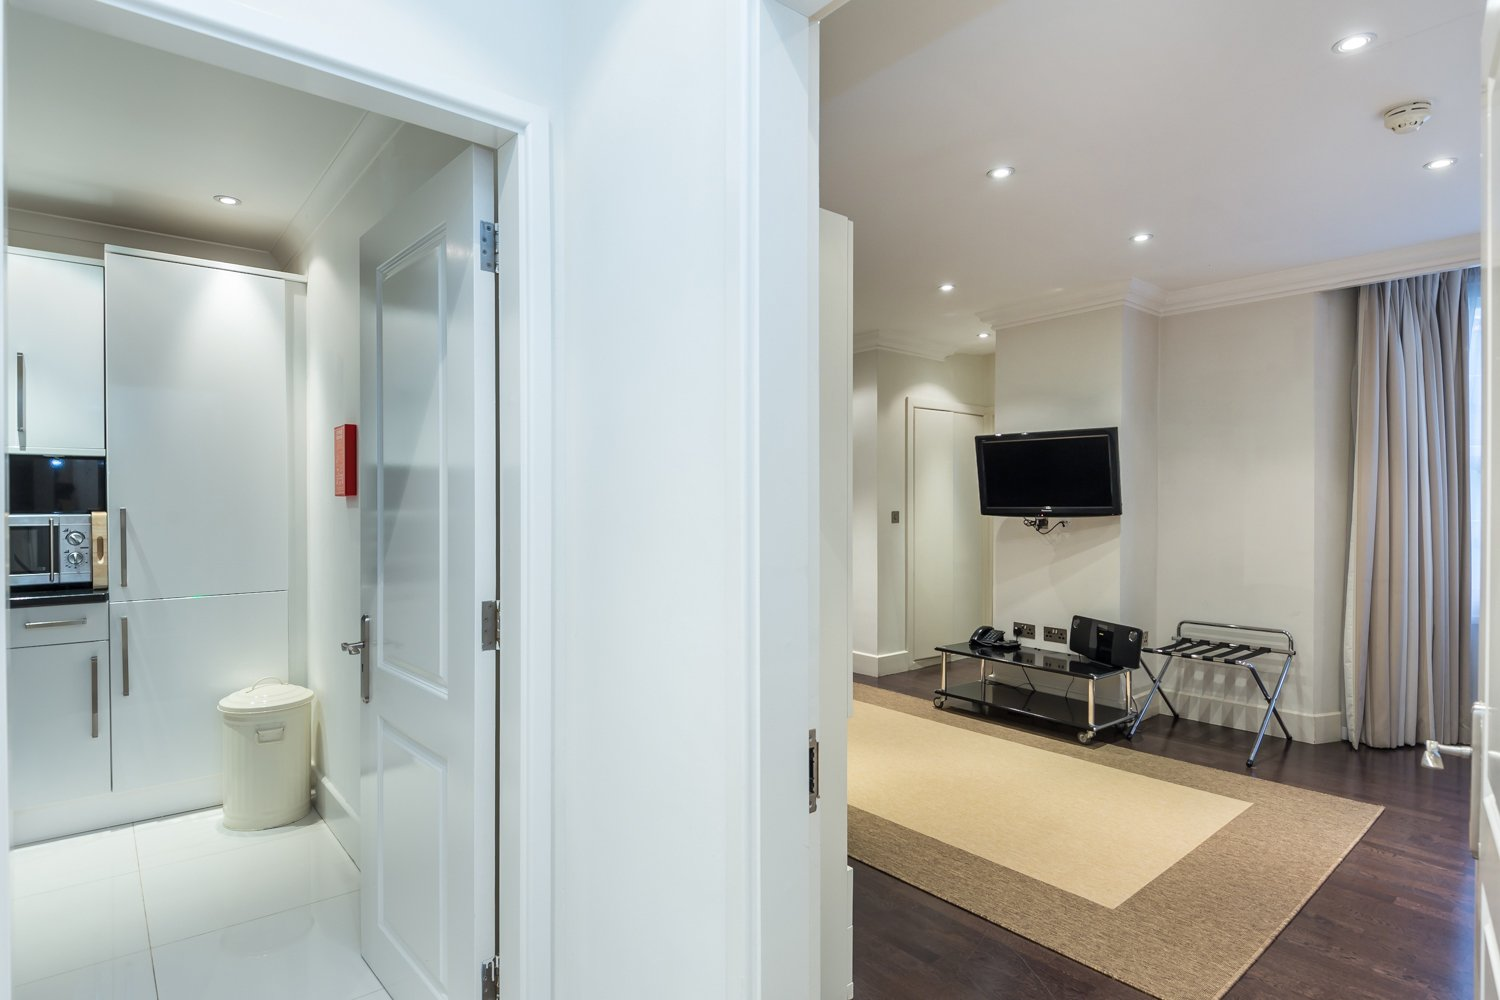 Serviced-Accommodation-Paddington-in-Central-London- -5-Star-Short-Let-Apartments-near-Hyde-Park- -Lift,-Aircon,-24h-Reception- -Urban-Stay